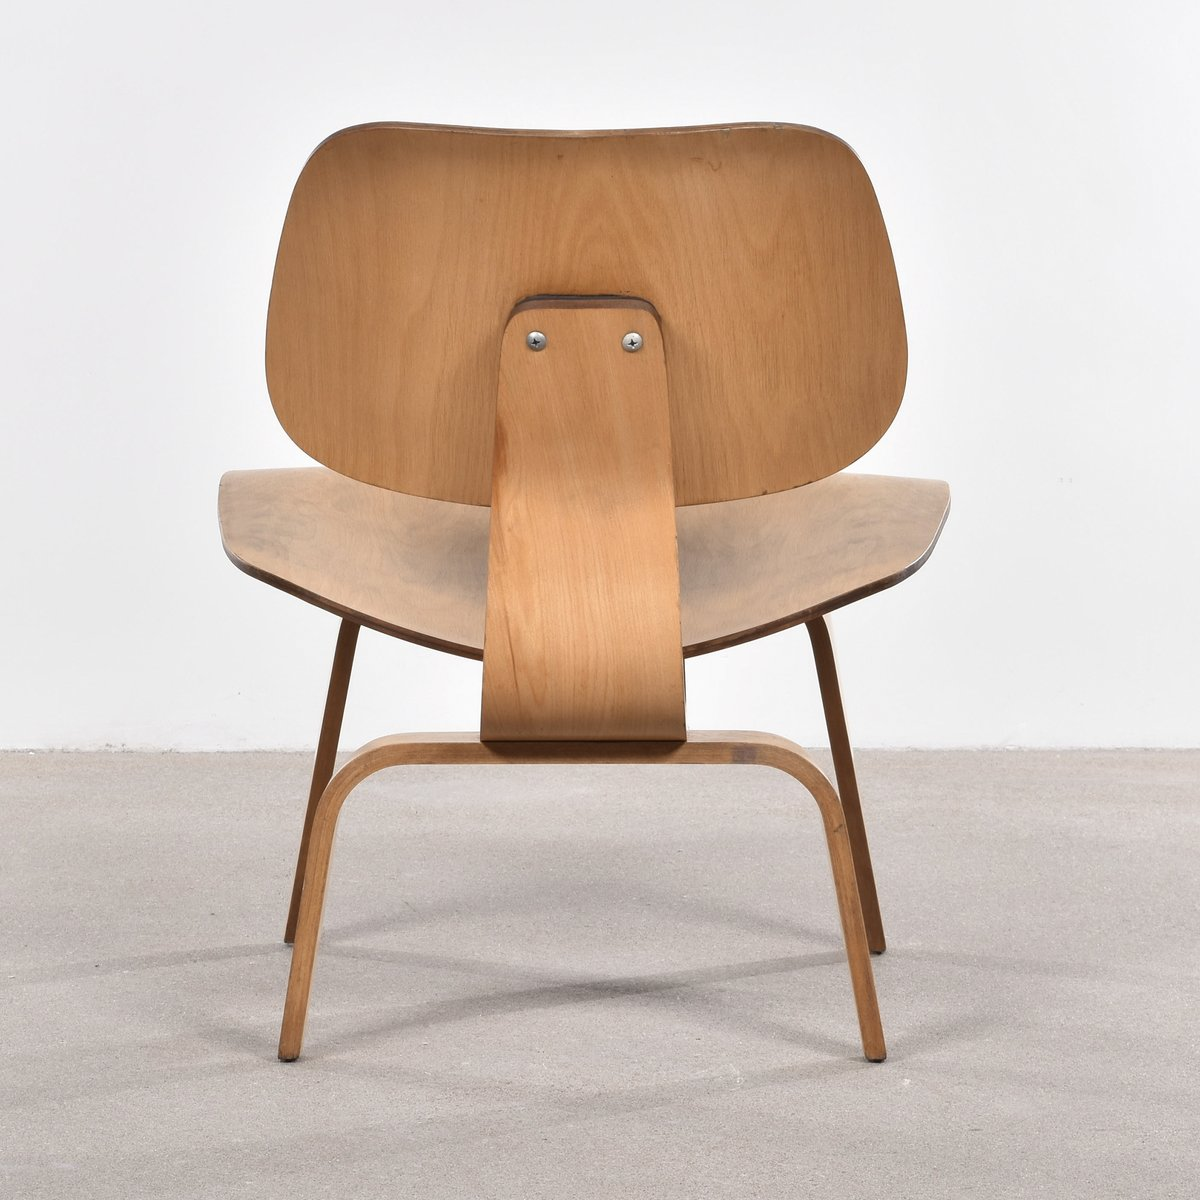 American lcw oak lounge chair by charles ray eames for for Charles eames lounge chair nachbildung